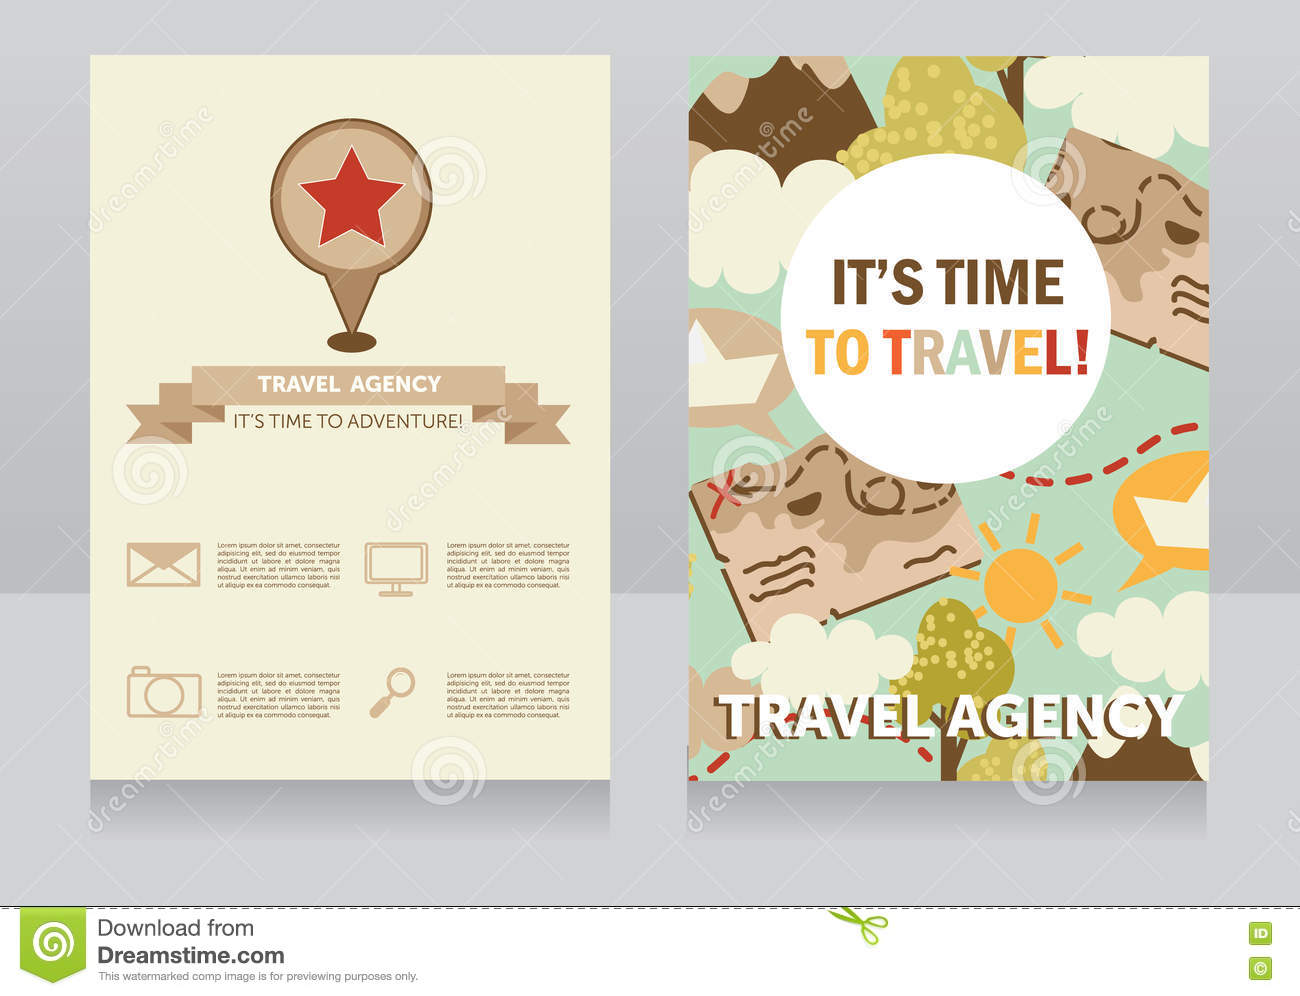 Design template for travel agency business card stock vector download design template for travel agency business card stock vector illustration of frame colorful colourmoves